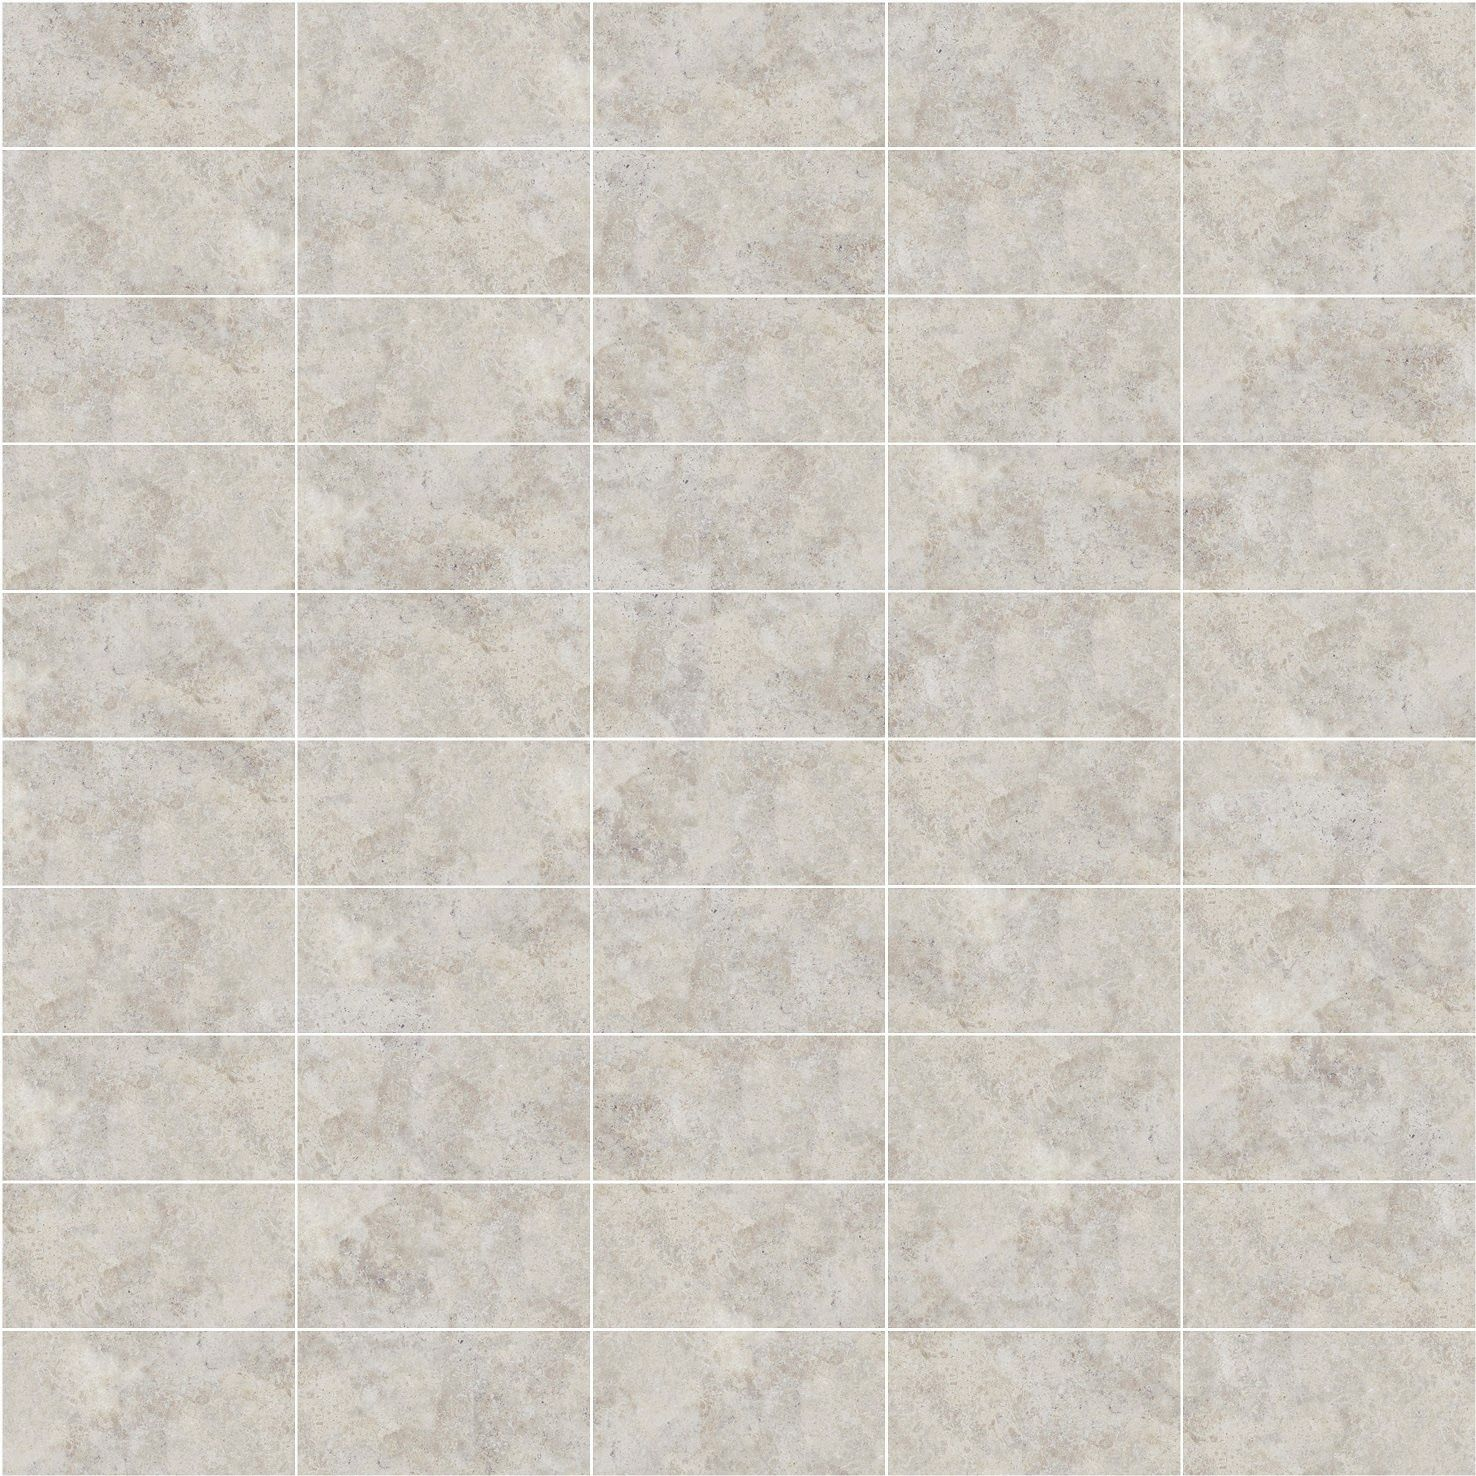 Texture Seamless Marble Floor Tile Textures Pinterest Marble Floor Marbles And Marble Tiles